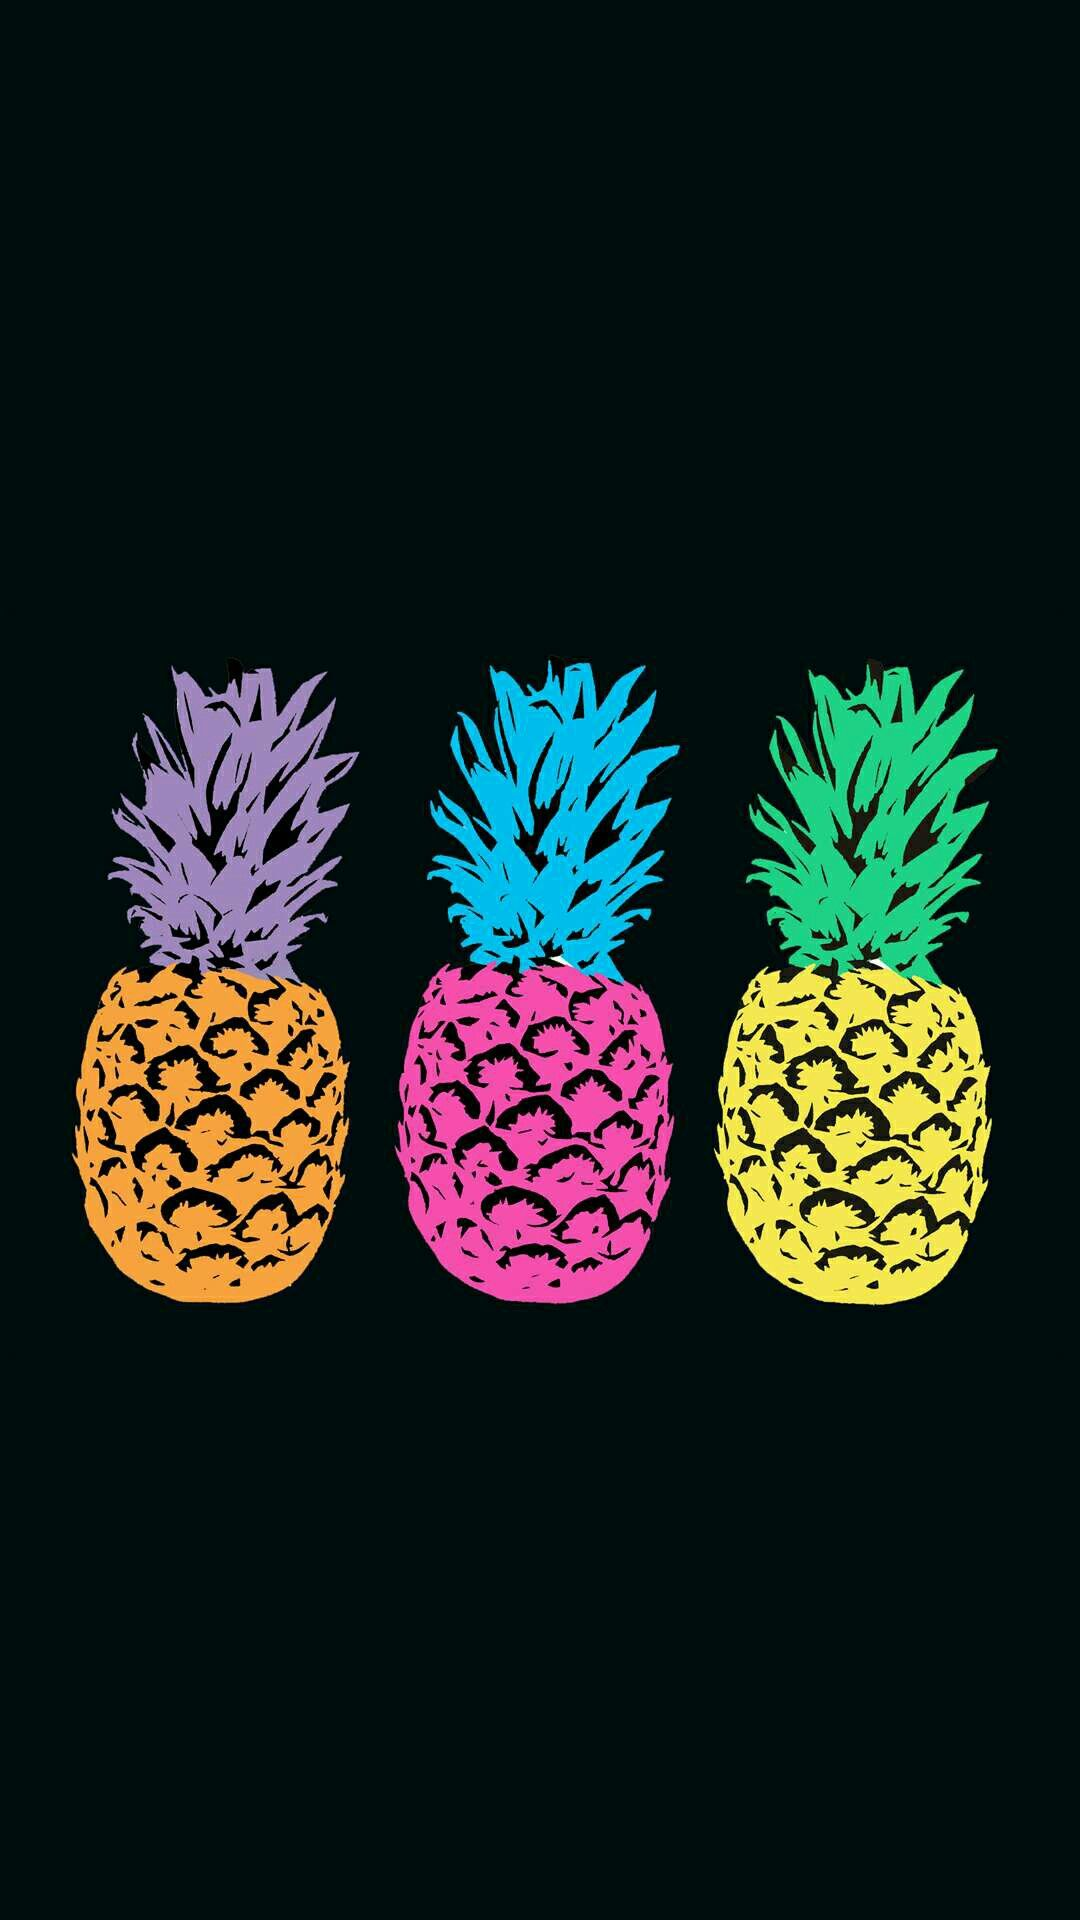 Pineapple neon pop art black background POP Pinterest